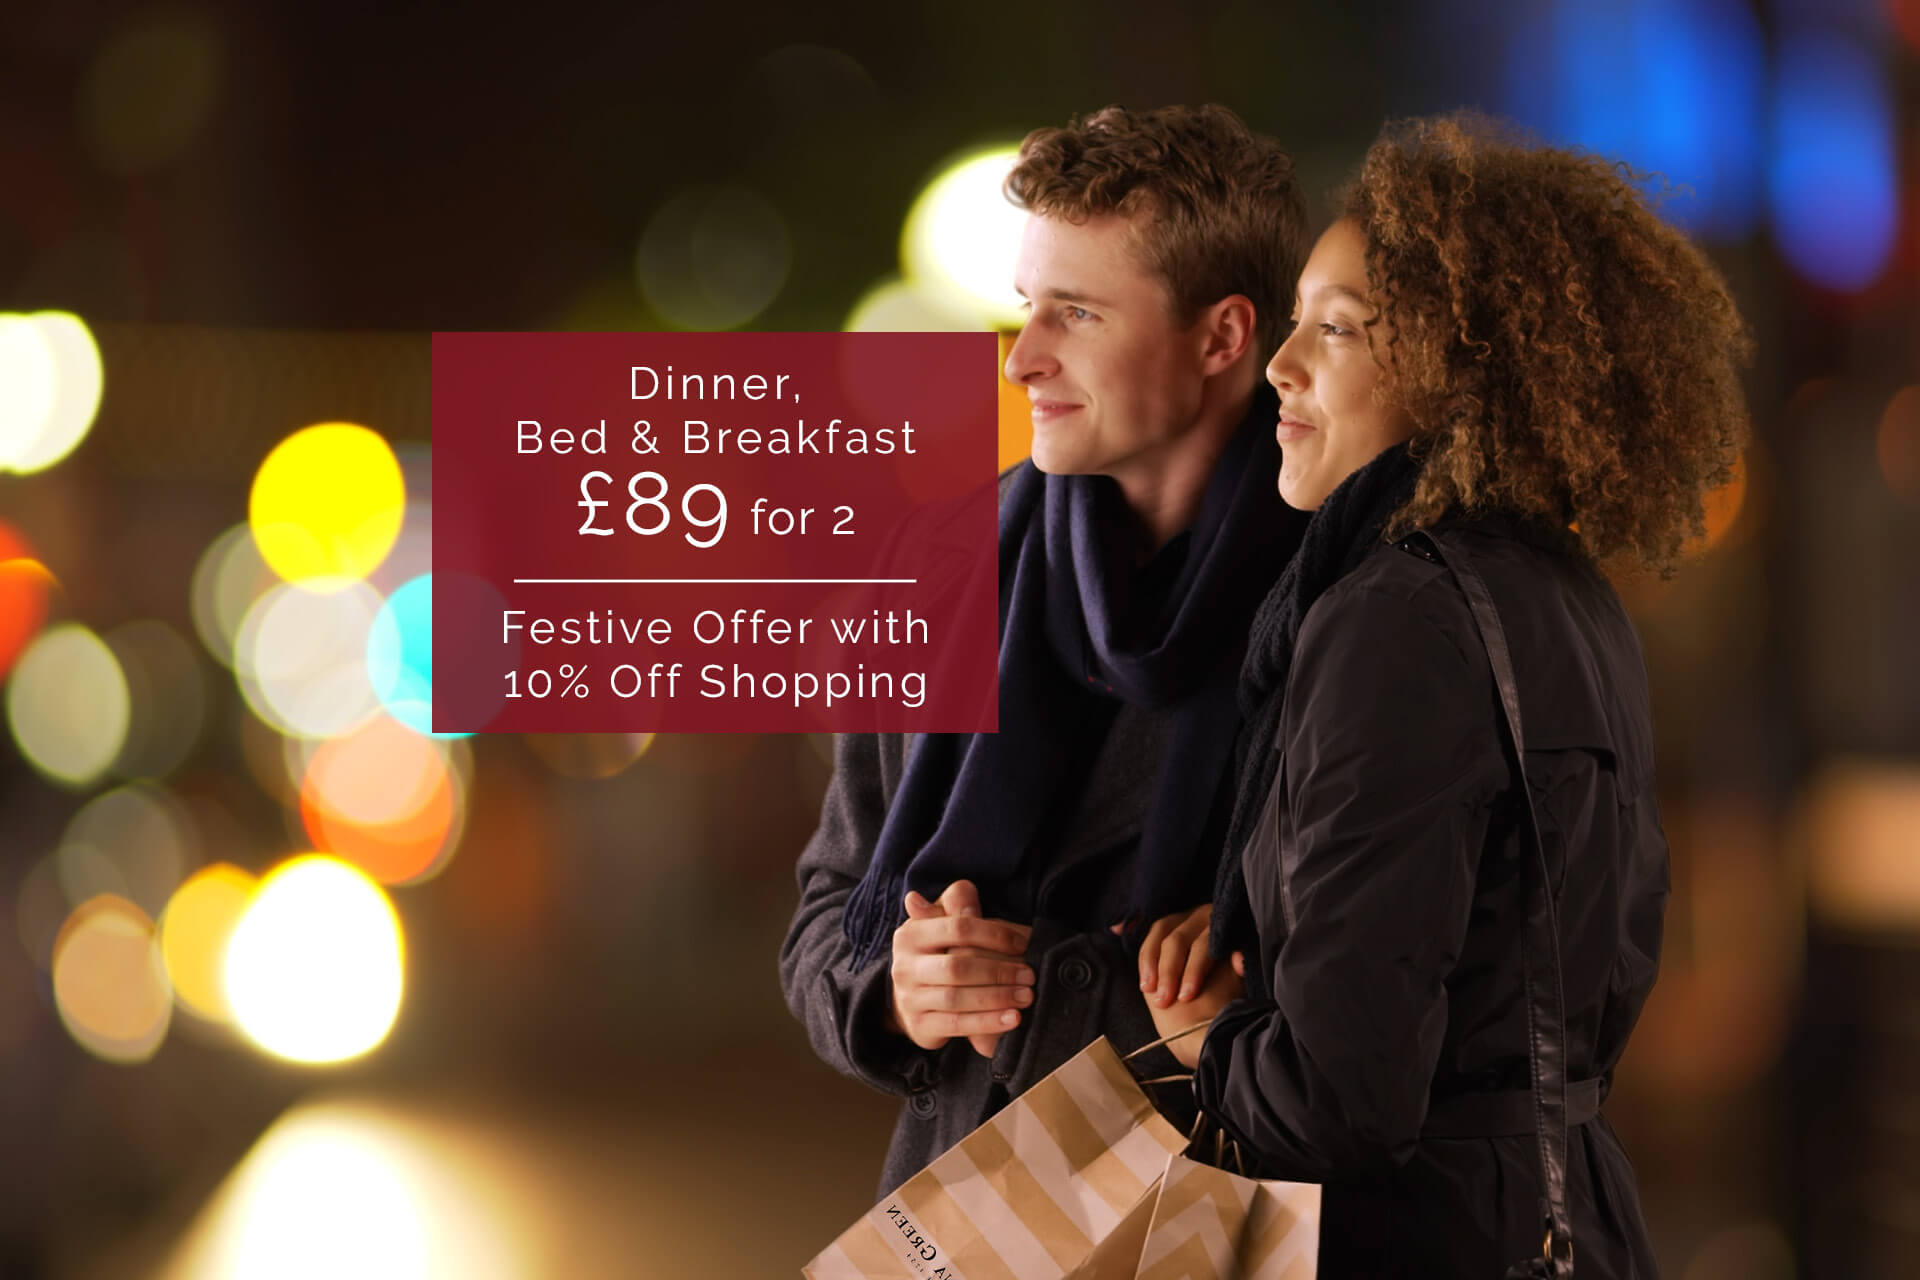 Festive Exclusive Dinner, Bed   Breakfast £89 for 2